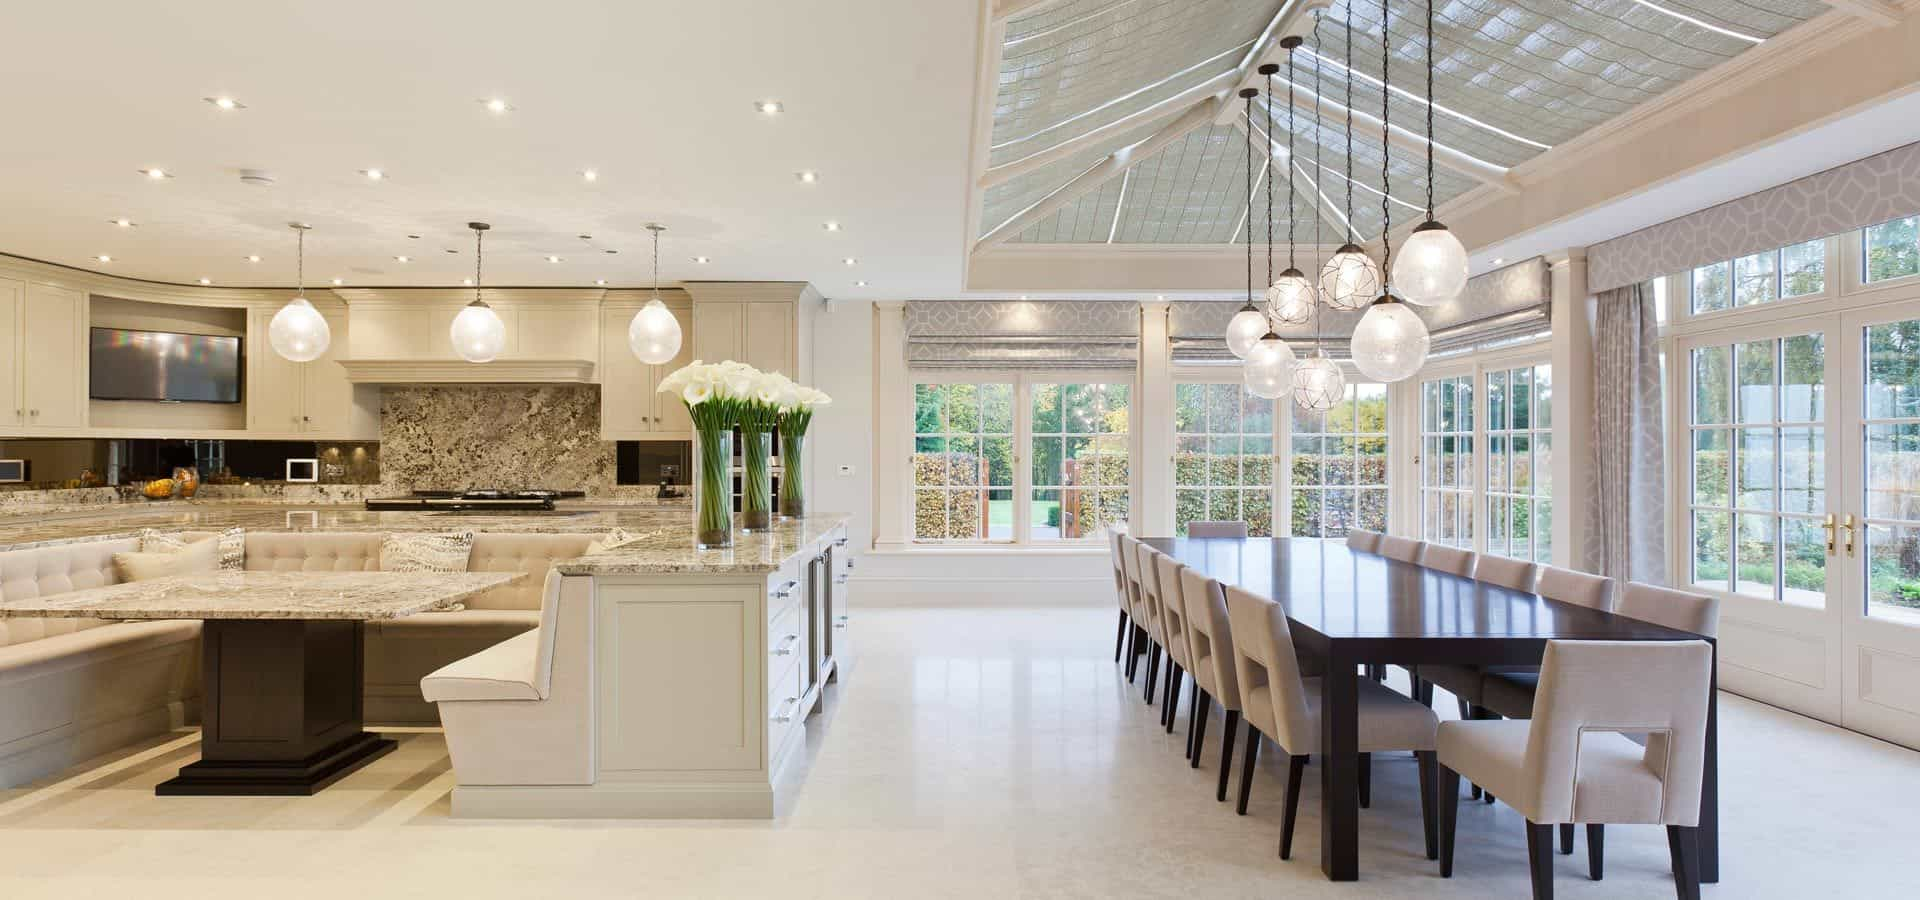 Get Your Conservatory Ready For Spring